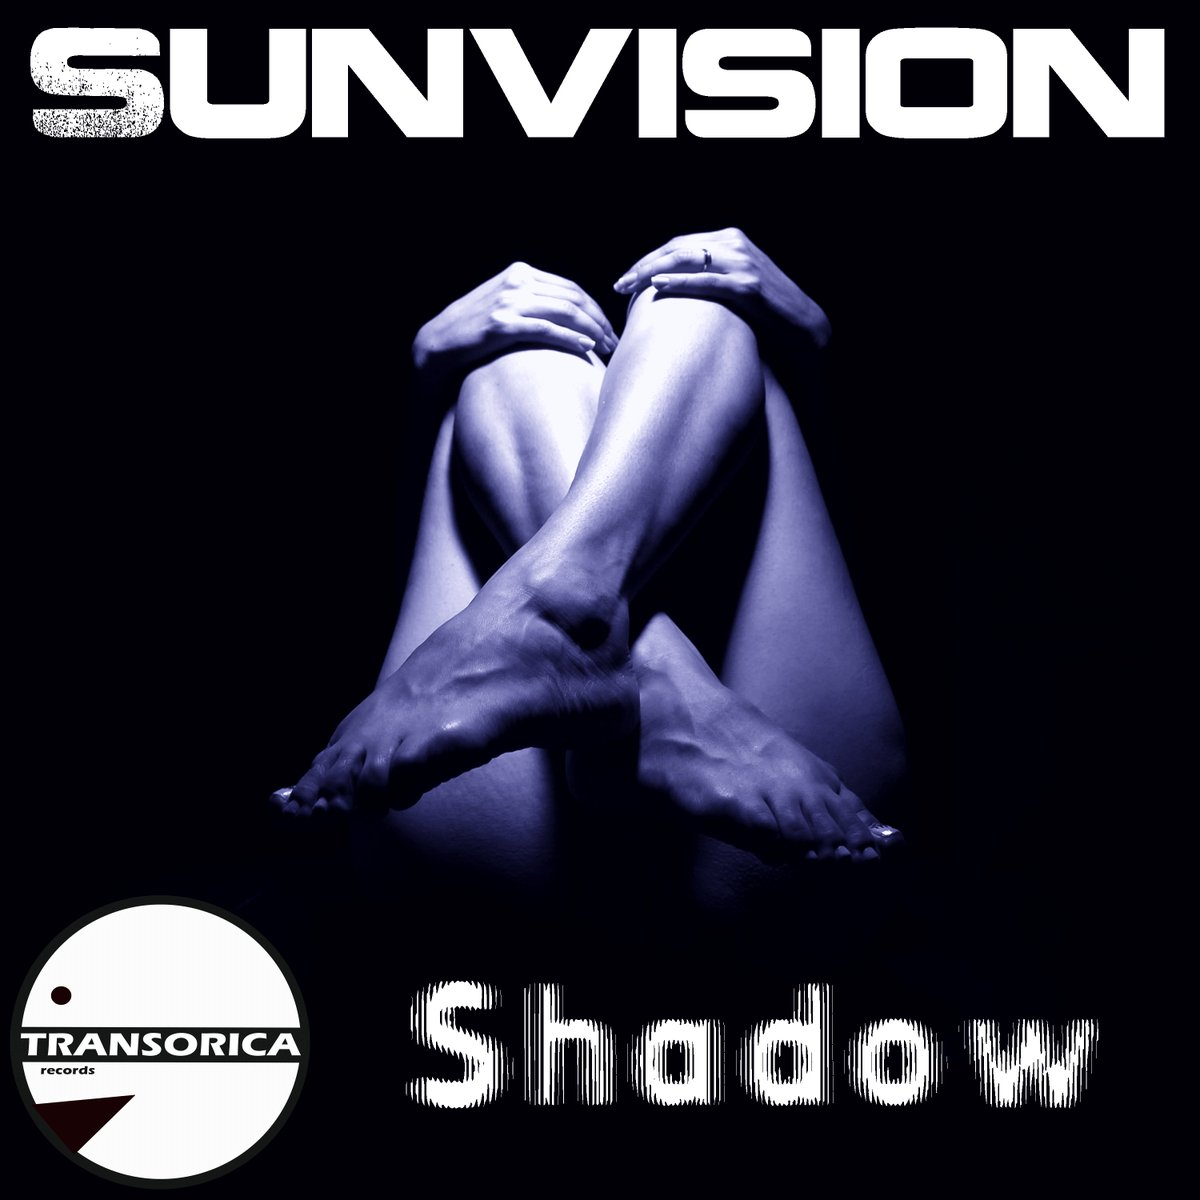 Sunvision - Shadow  https://www. beatport.com/release/shadow /1972731 &nbsp; …  #Transorica #ClubMusic #TranceFamily #TranceMusic #Sunvision #EDMFamily #UpliftingTrance #Trance<br>http://pic.twitter.com/kSSpNYb8DG